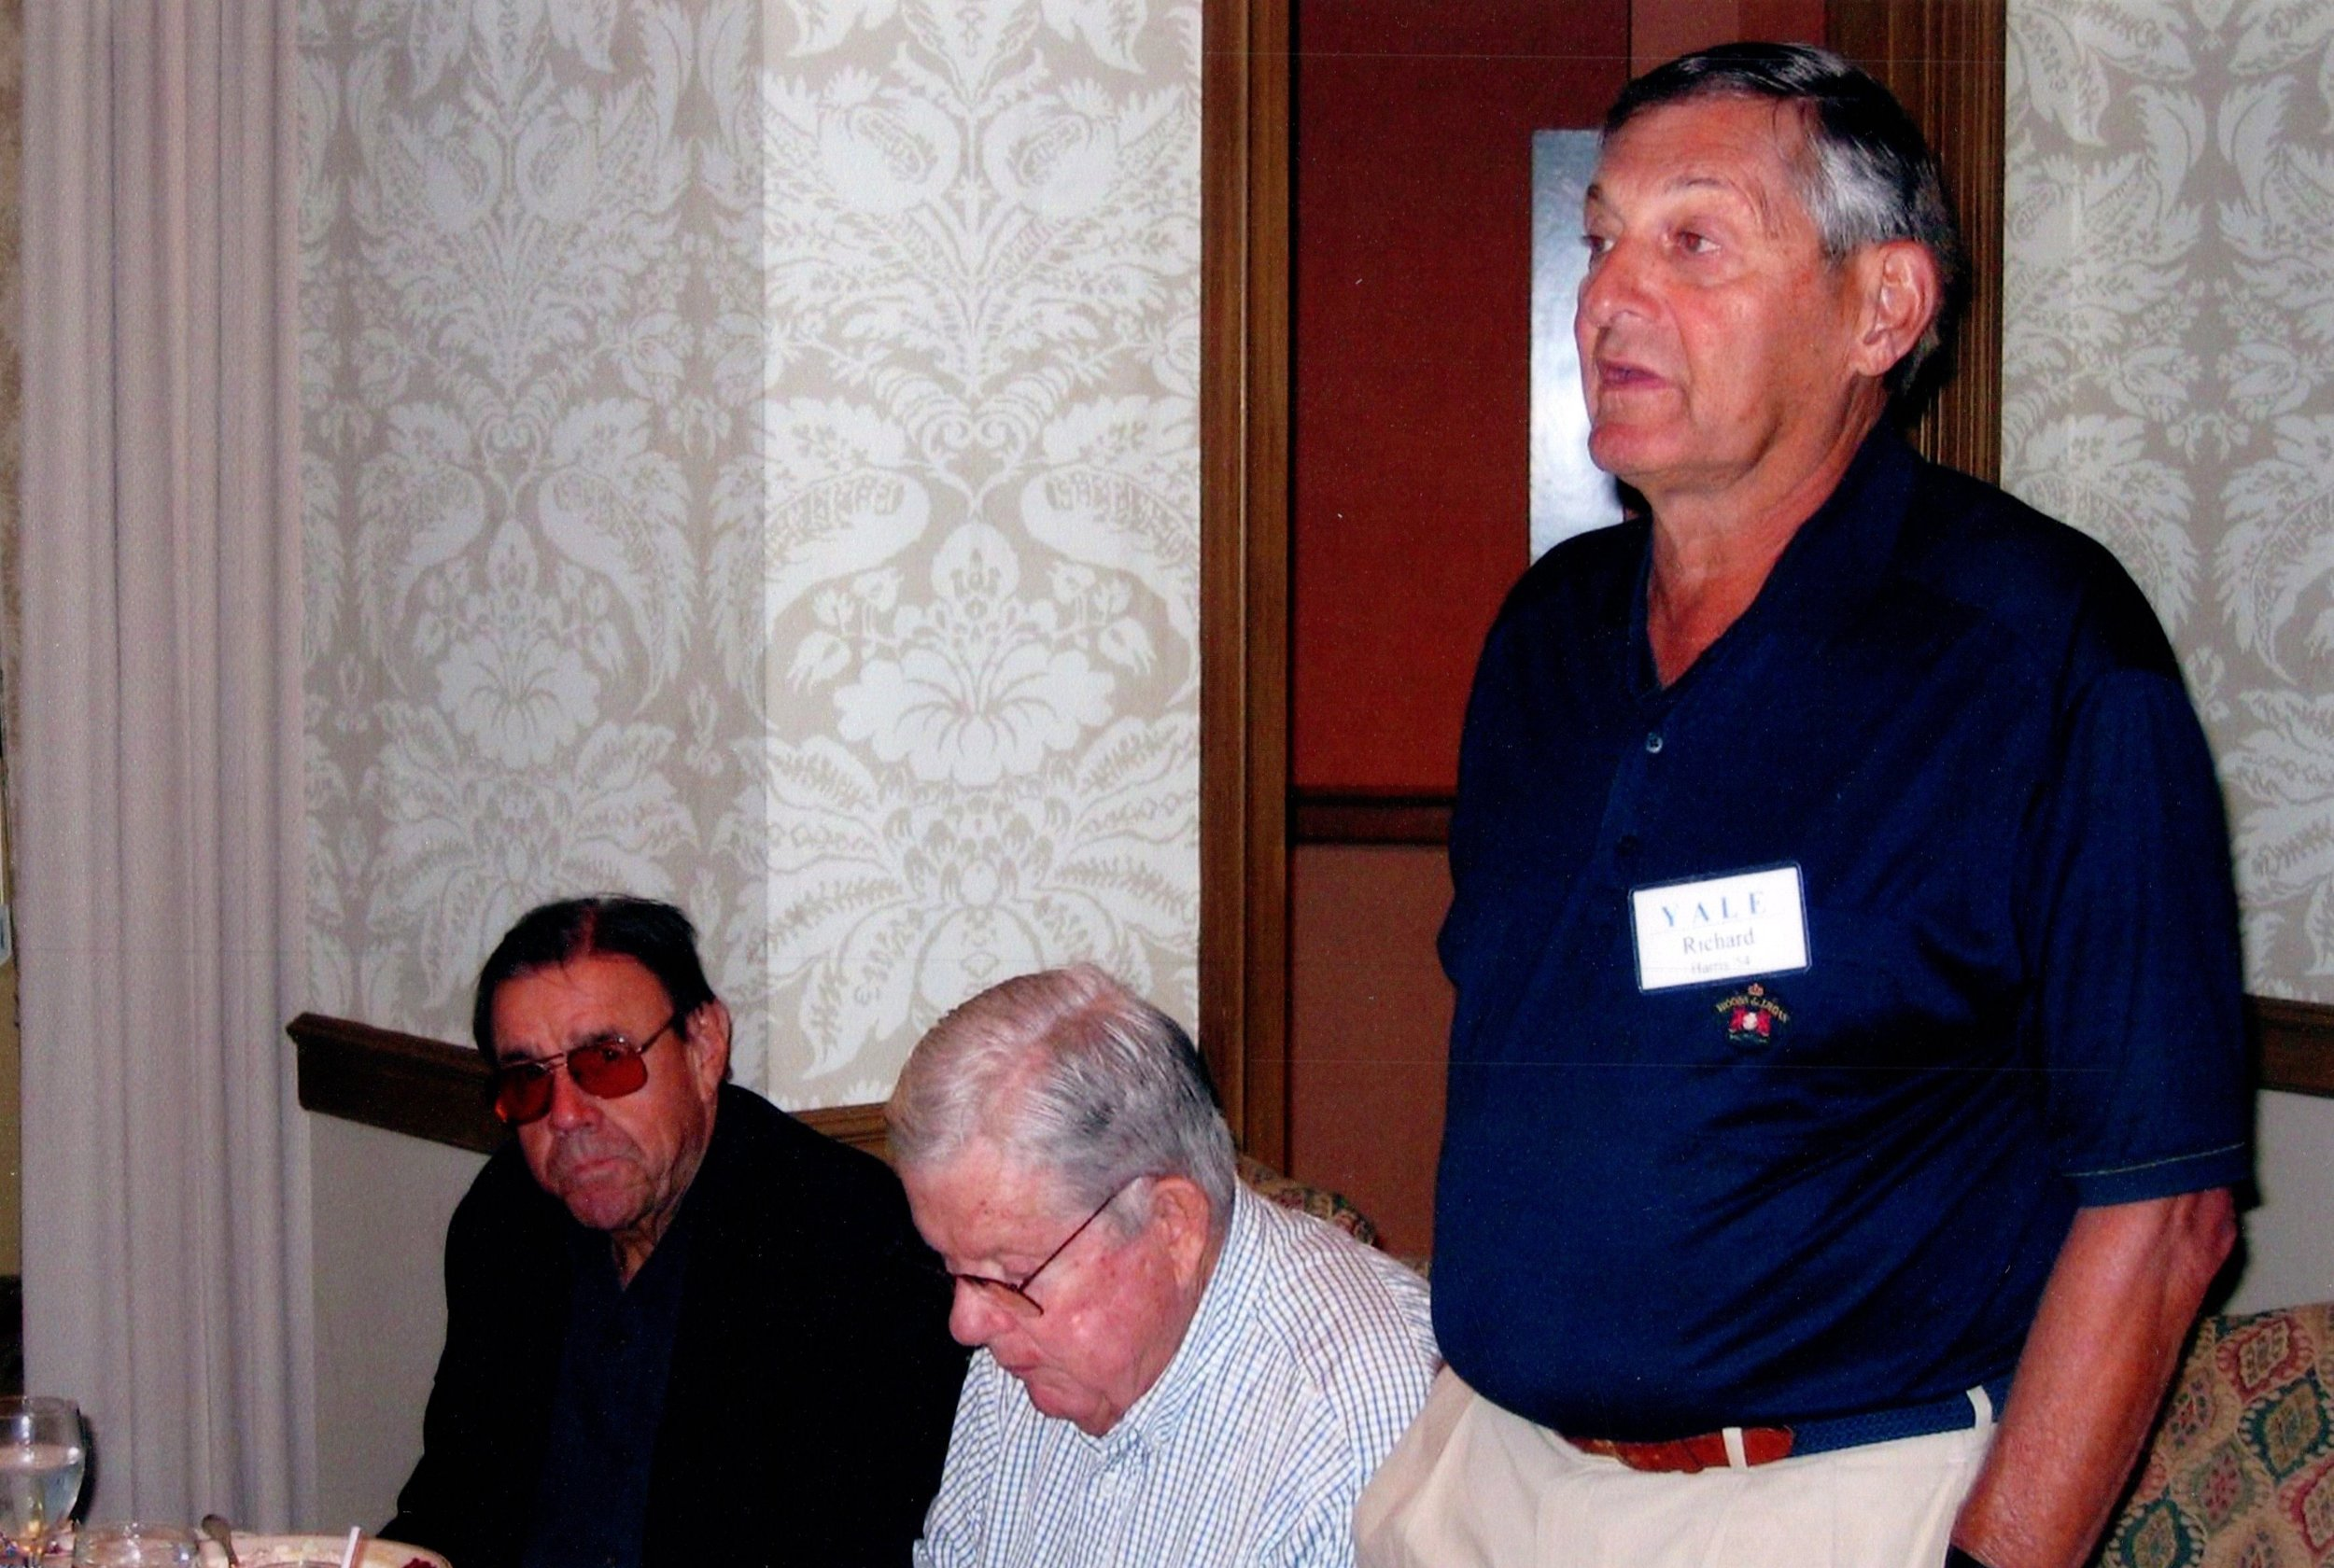 12_9_2004 - MONTHLY LUNCHEON - THE CLUB AT PELICAN BAY 1.jpg